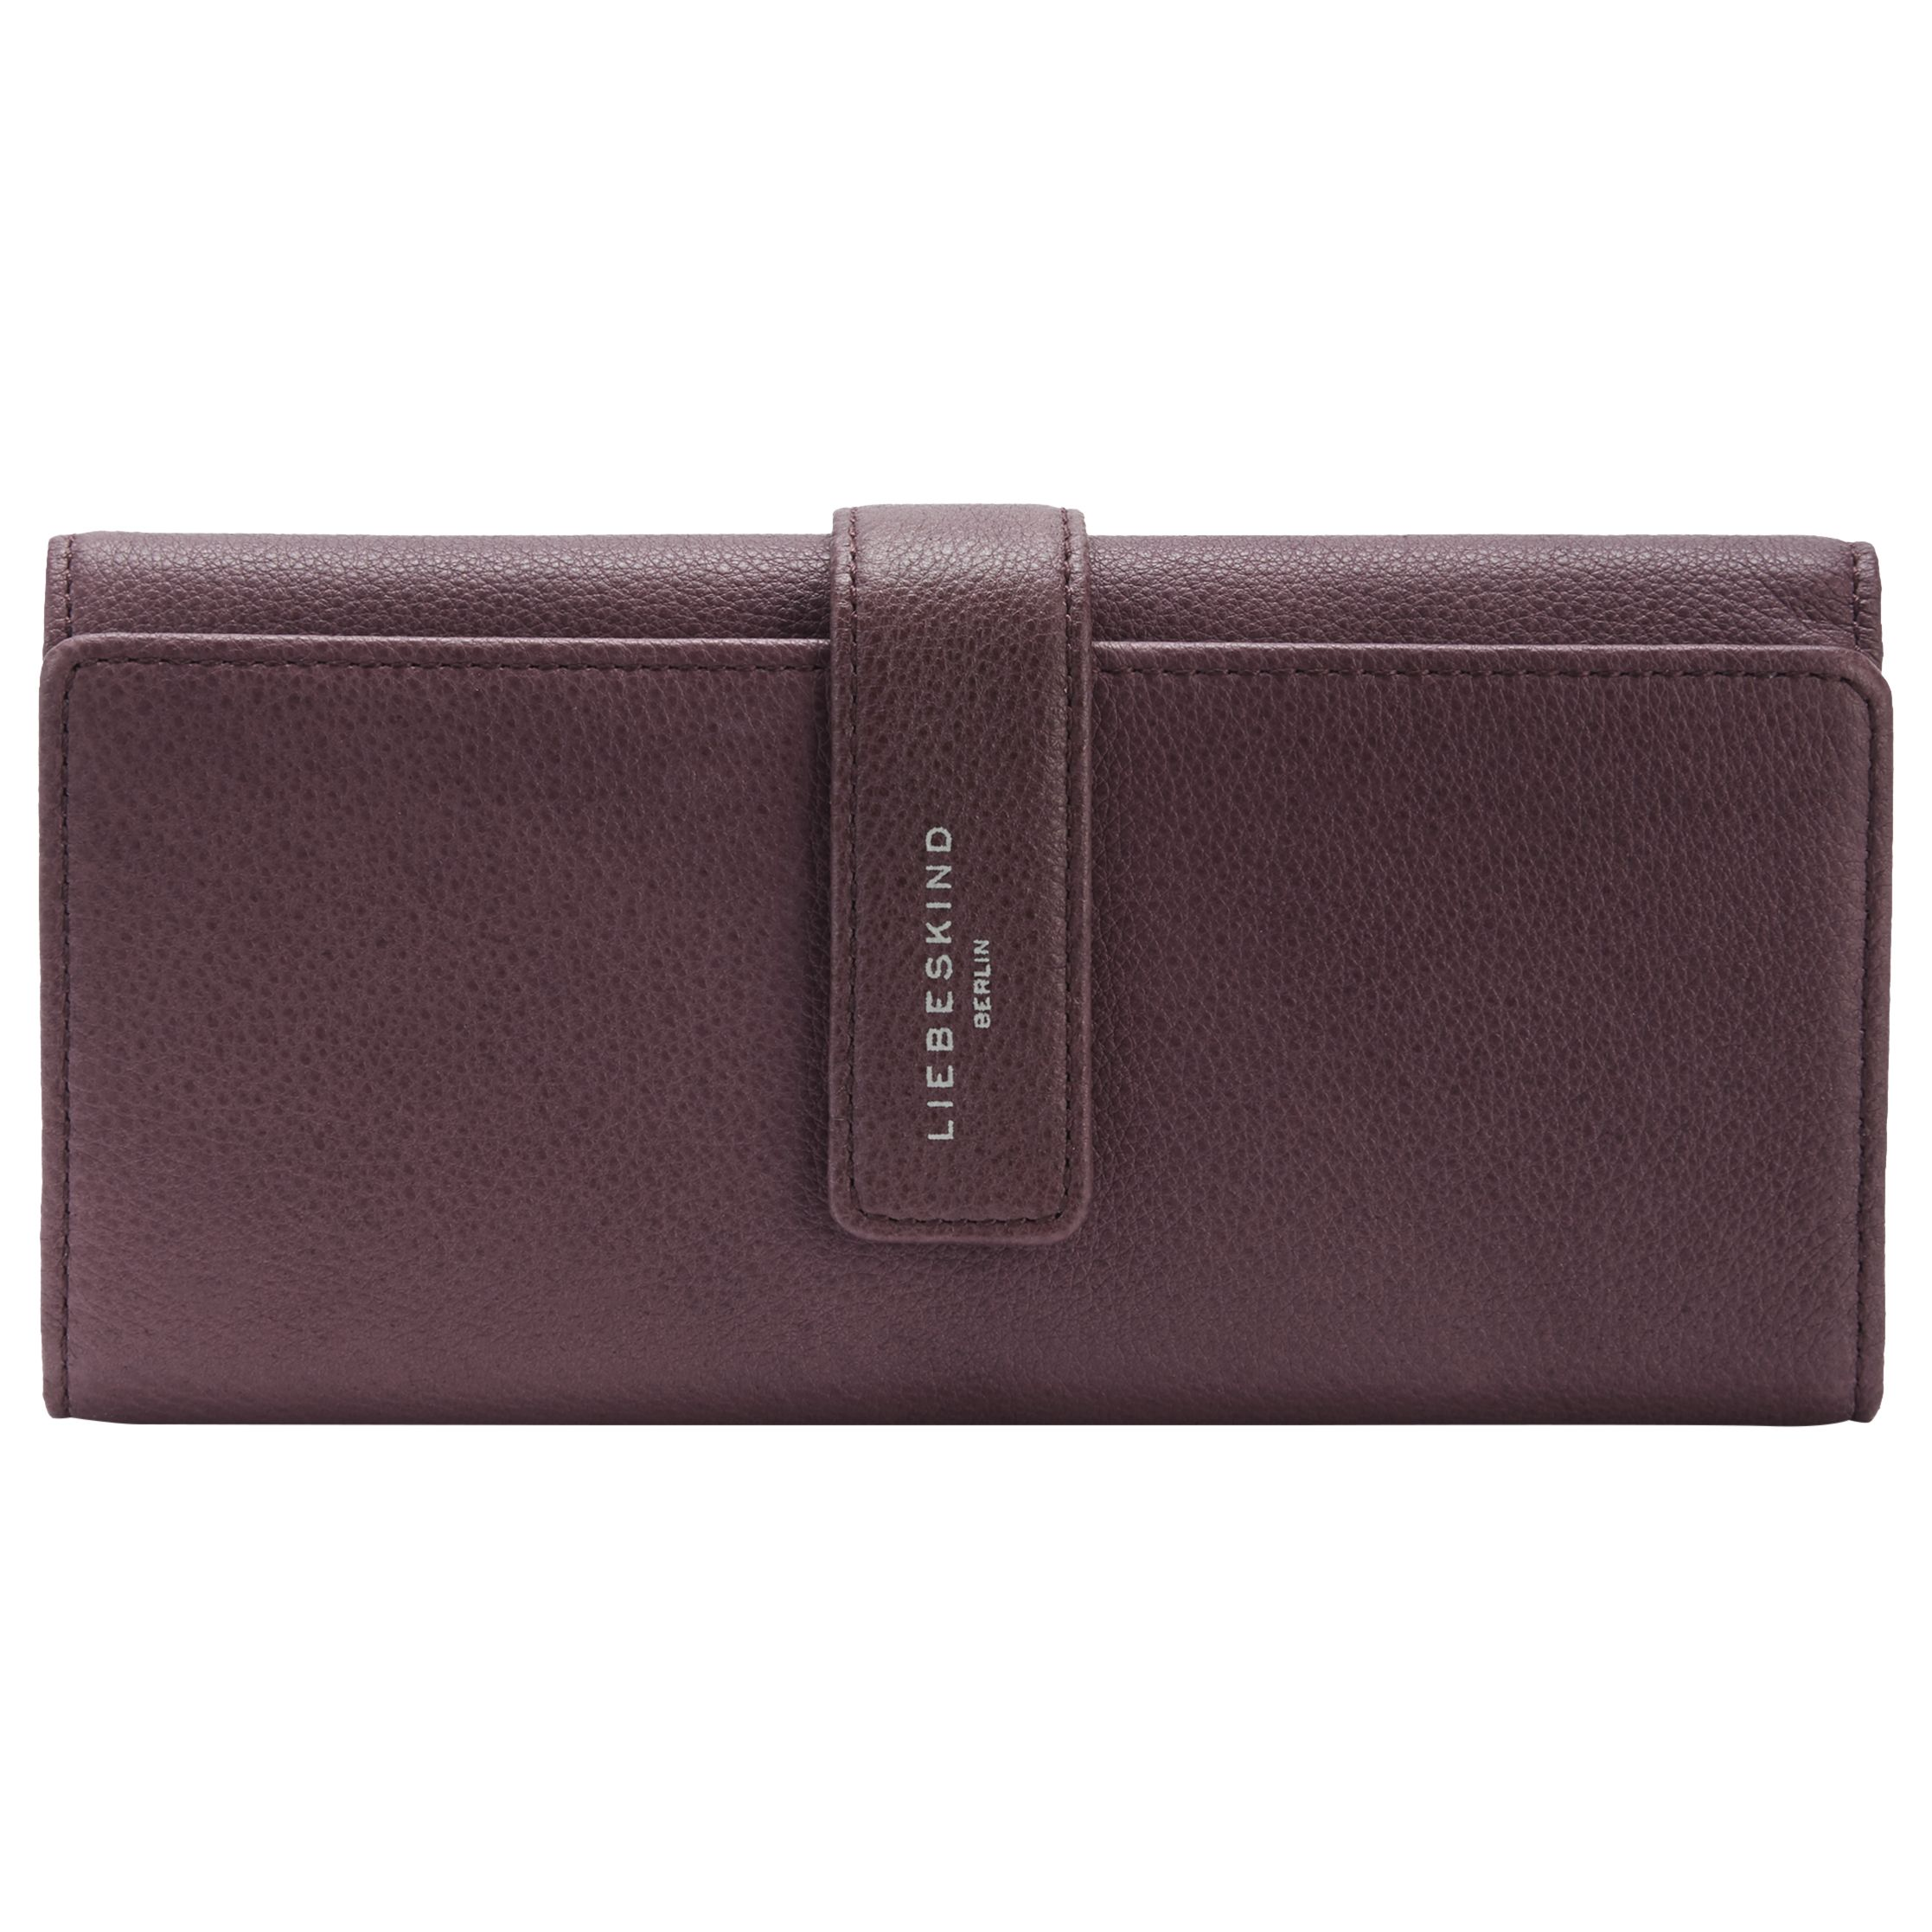 Liebeskind Liebeskind Leonie F7 Leather Purse, Massai Plump